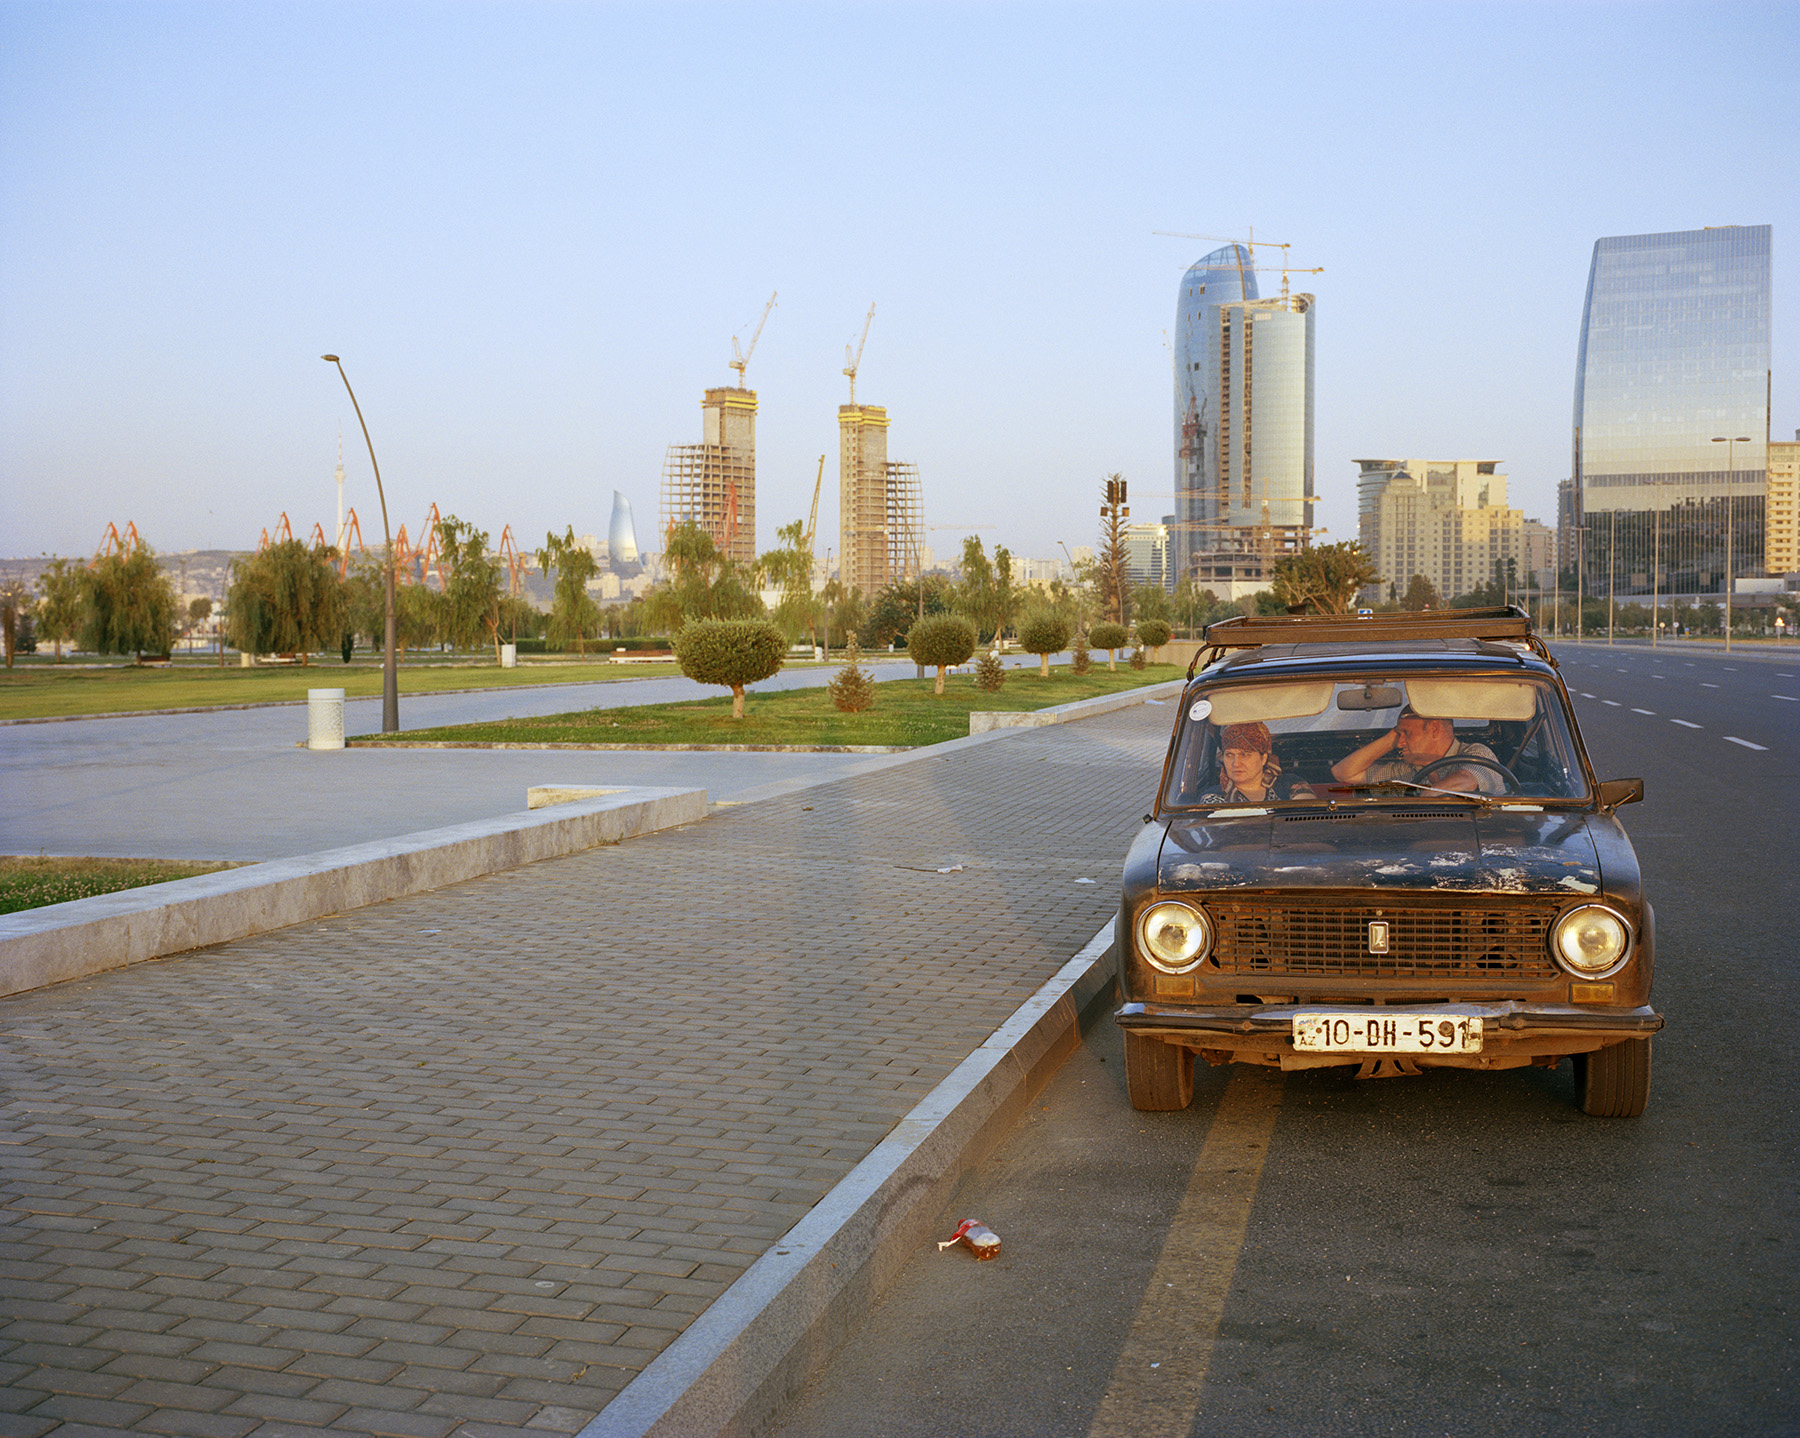 2016: A couple sits in an old Lada while Port Baku, a luxury shopping area is visible behind them; directly situated next to White City, an upmarket housing development. Its prices remain unattainable to most Bakuvians.